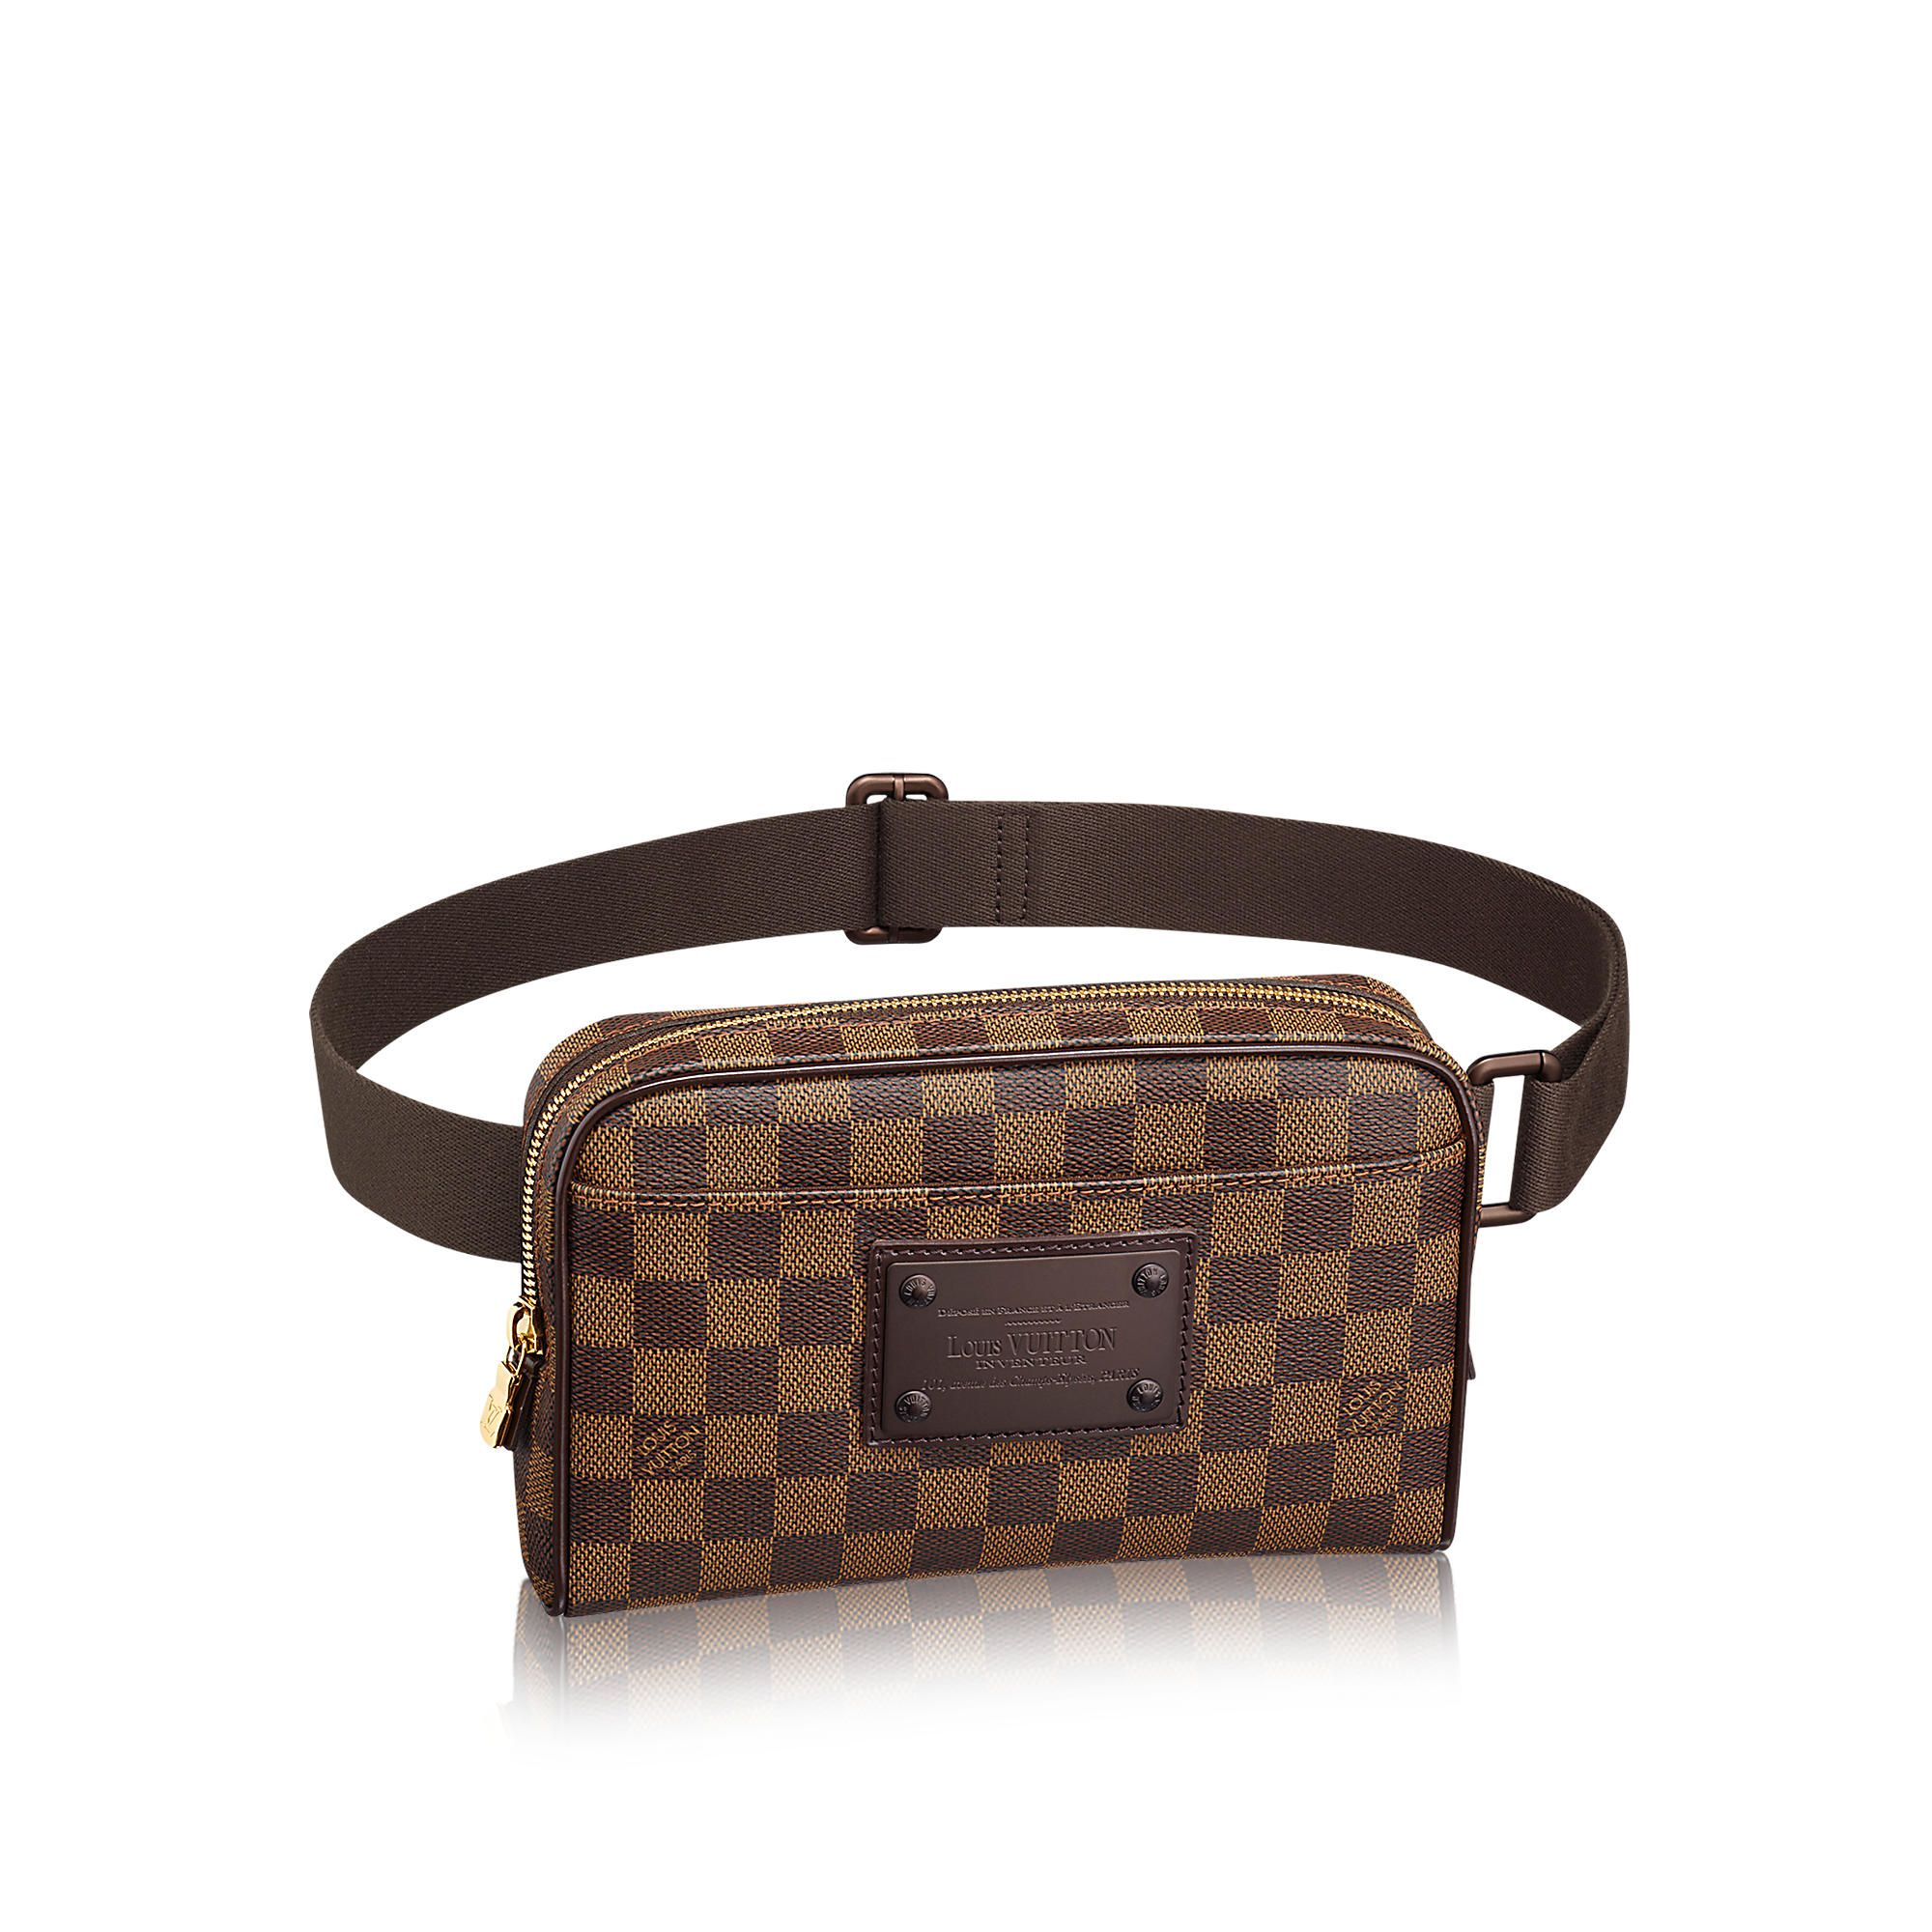 8cf59a62bff9 Discover Louis Vuitton Bum Bag Brooklyn via Louis Vuitton